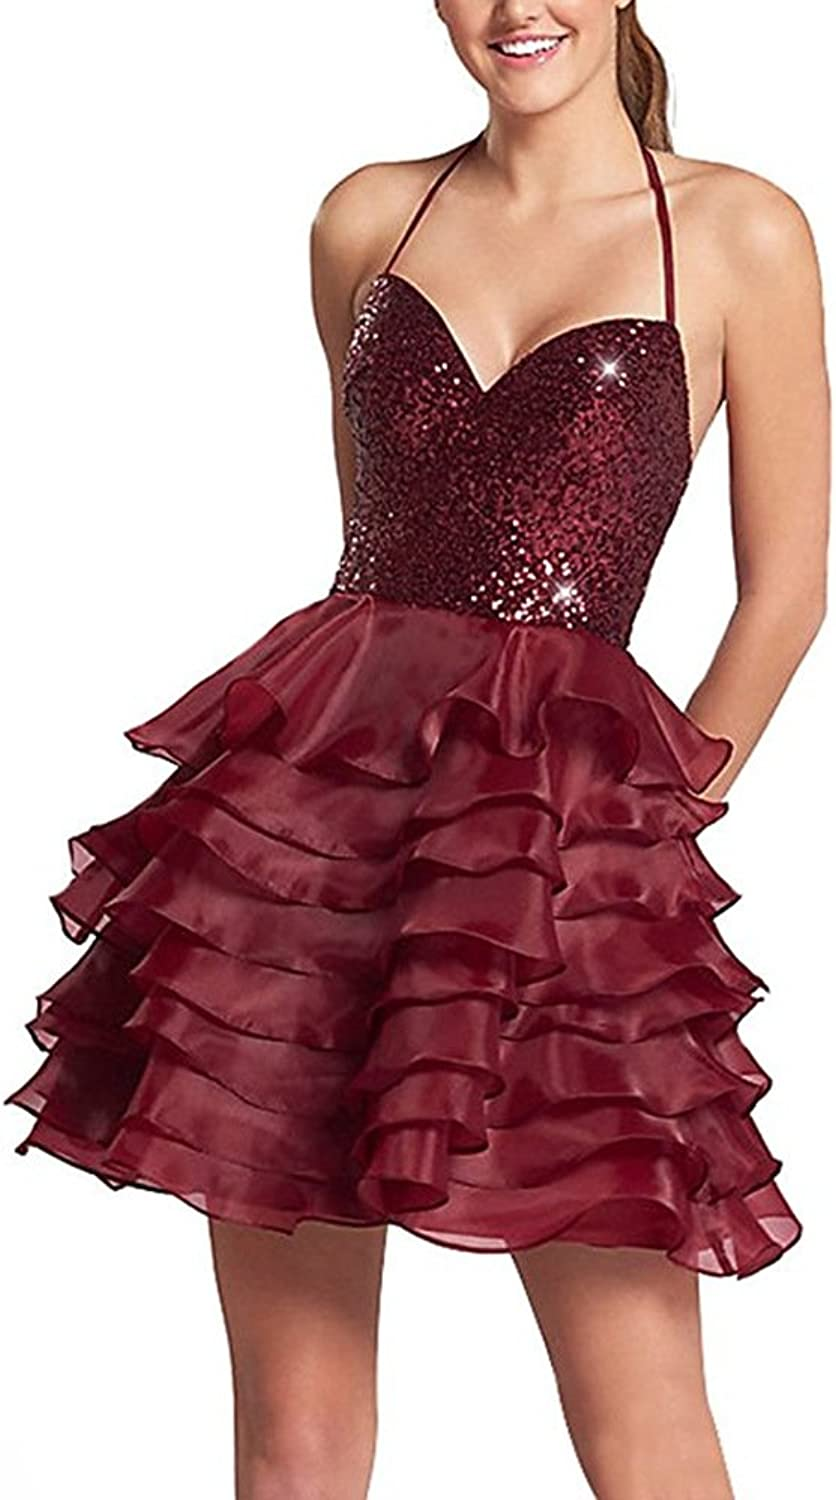 Staypretty Halter Sparkly Oraganza Backless Beaded Cocktail Dress Knee Length Homecoming Dress